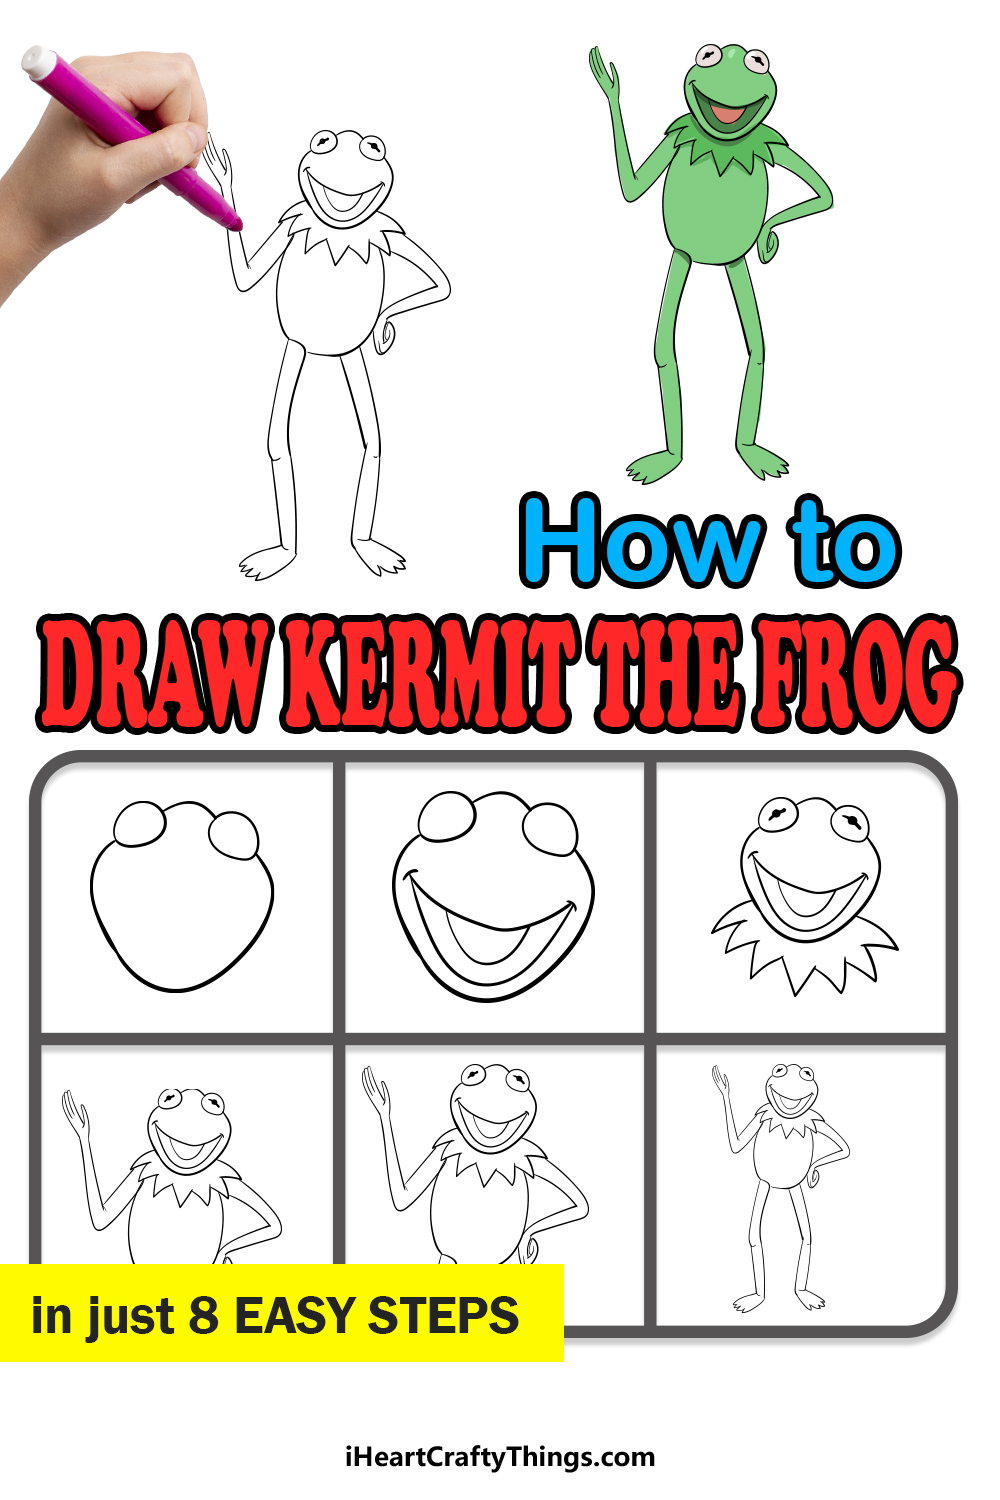 how to draw Kermit the frog in 8 easy steps